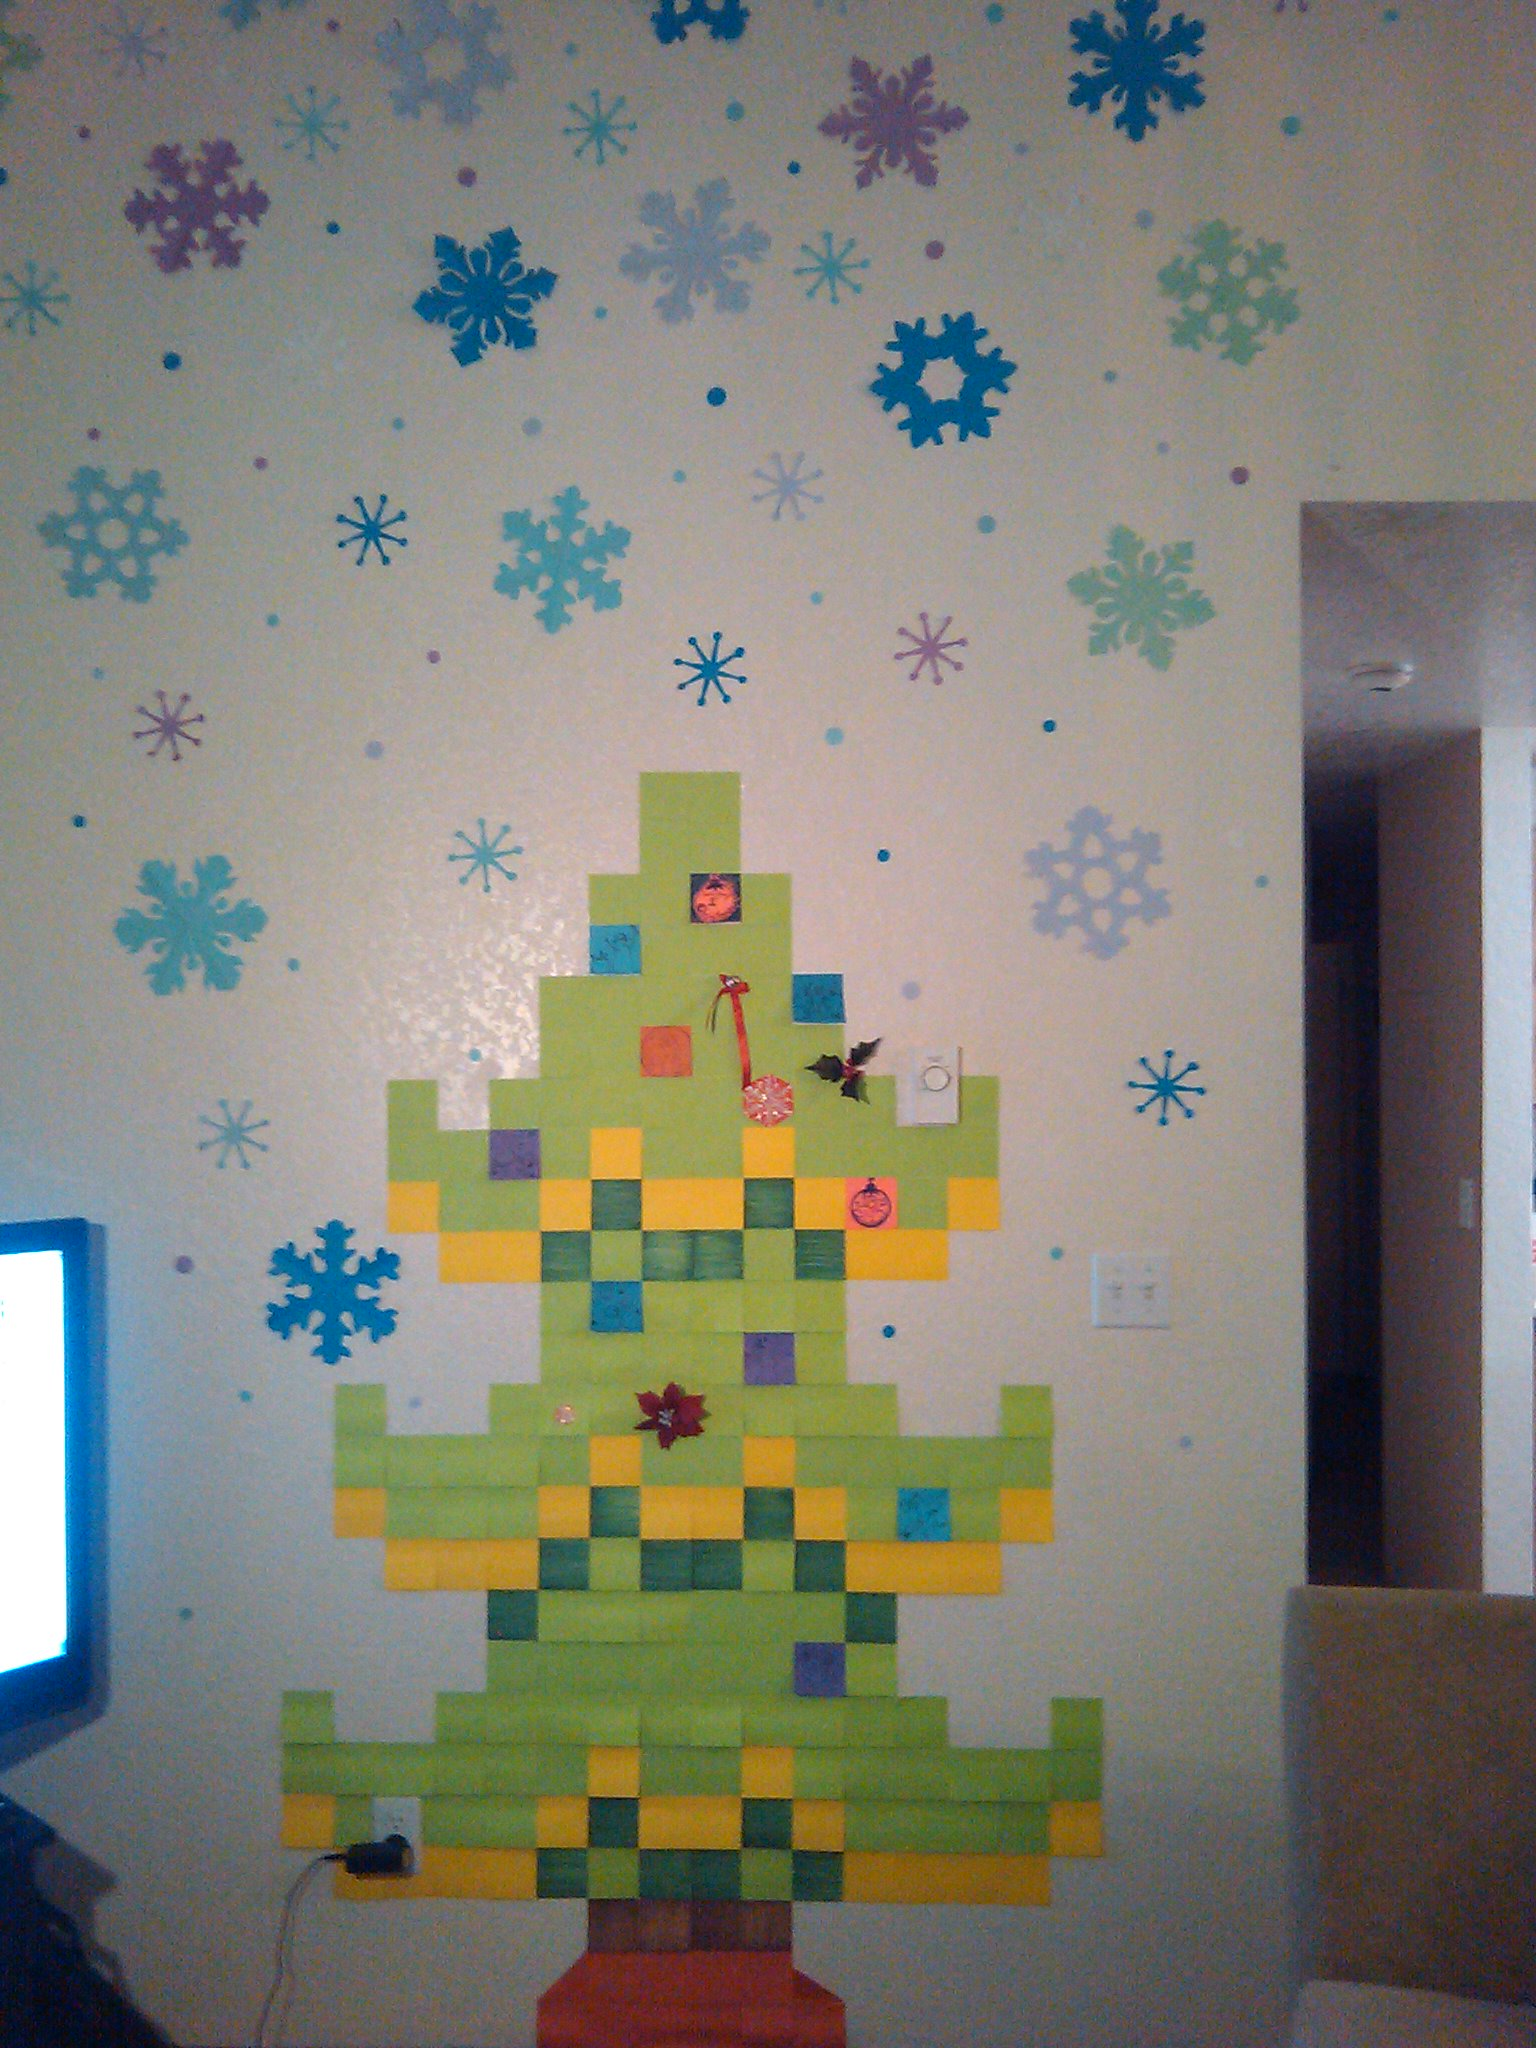 Drawn pixel art sticky note Snowflake Tree  drawn and